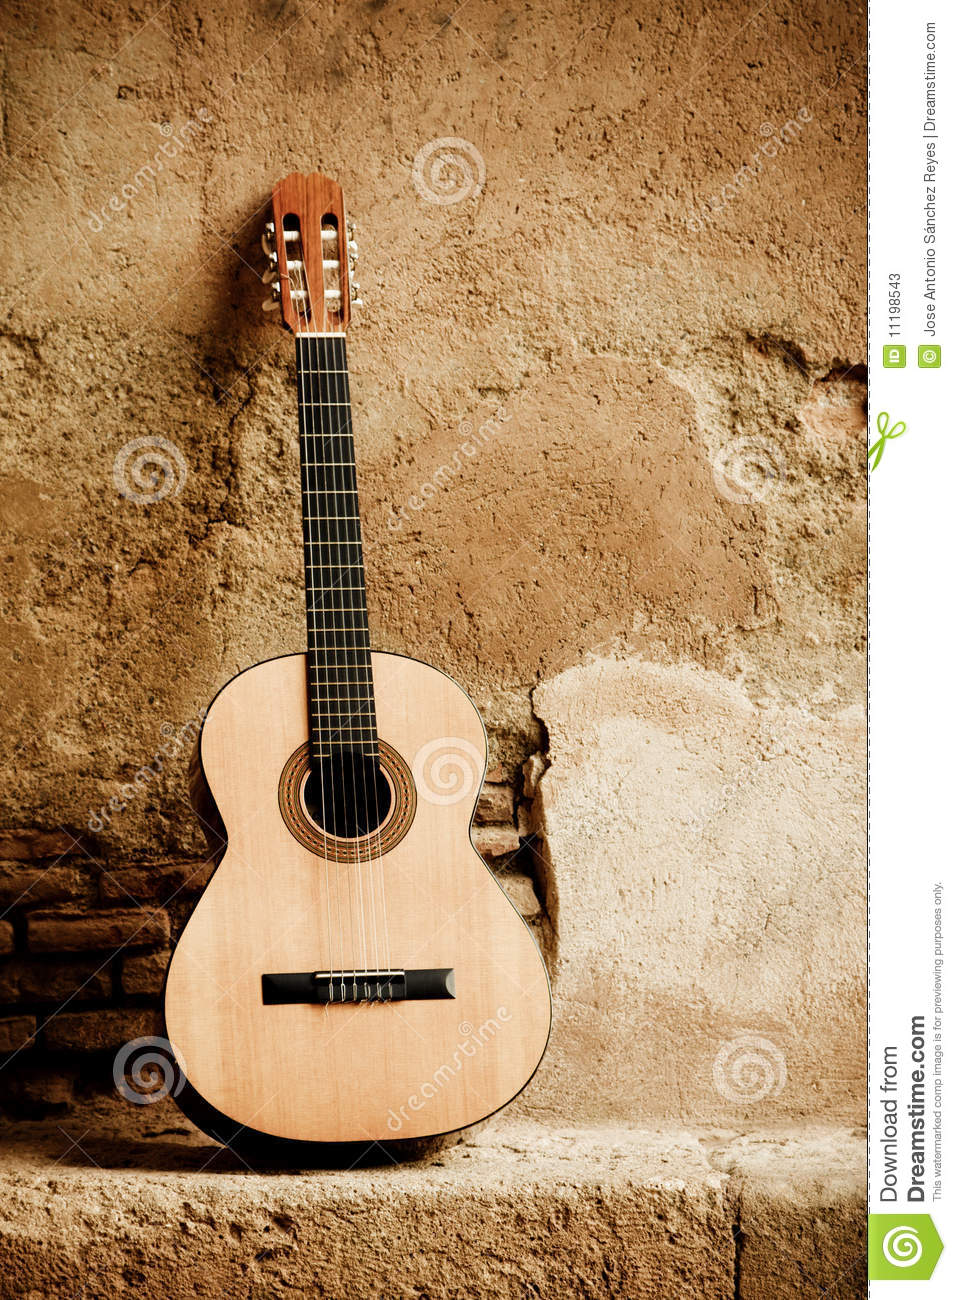 Guitar Hd Wallpapers 1080p Classic Guitar On Wall Stock Image Image Of Brown